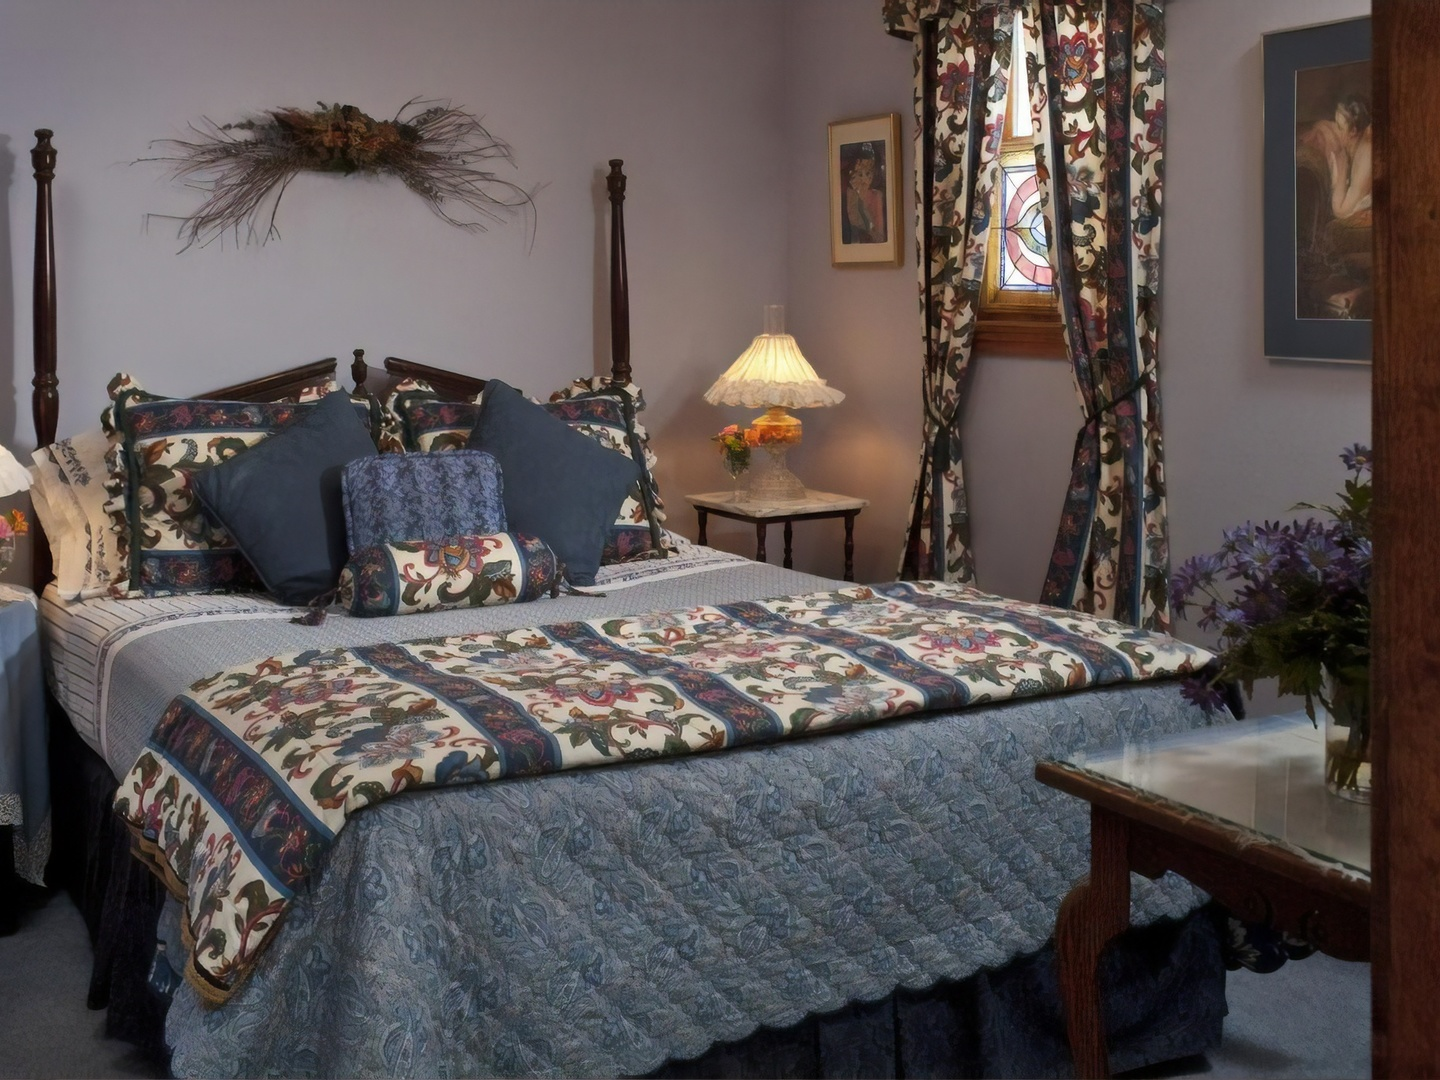 A bedroom with a bed and a chair in a room at Cliff Cottage Inn - Boutique Hotel and Bed & Breakfast.